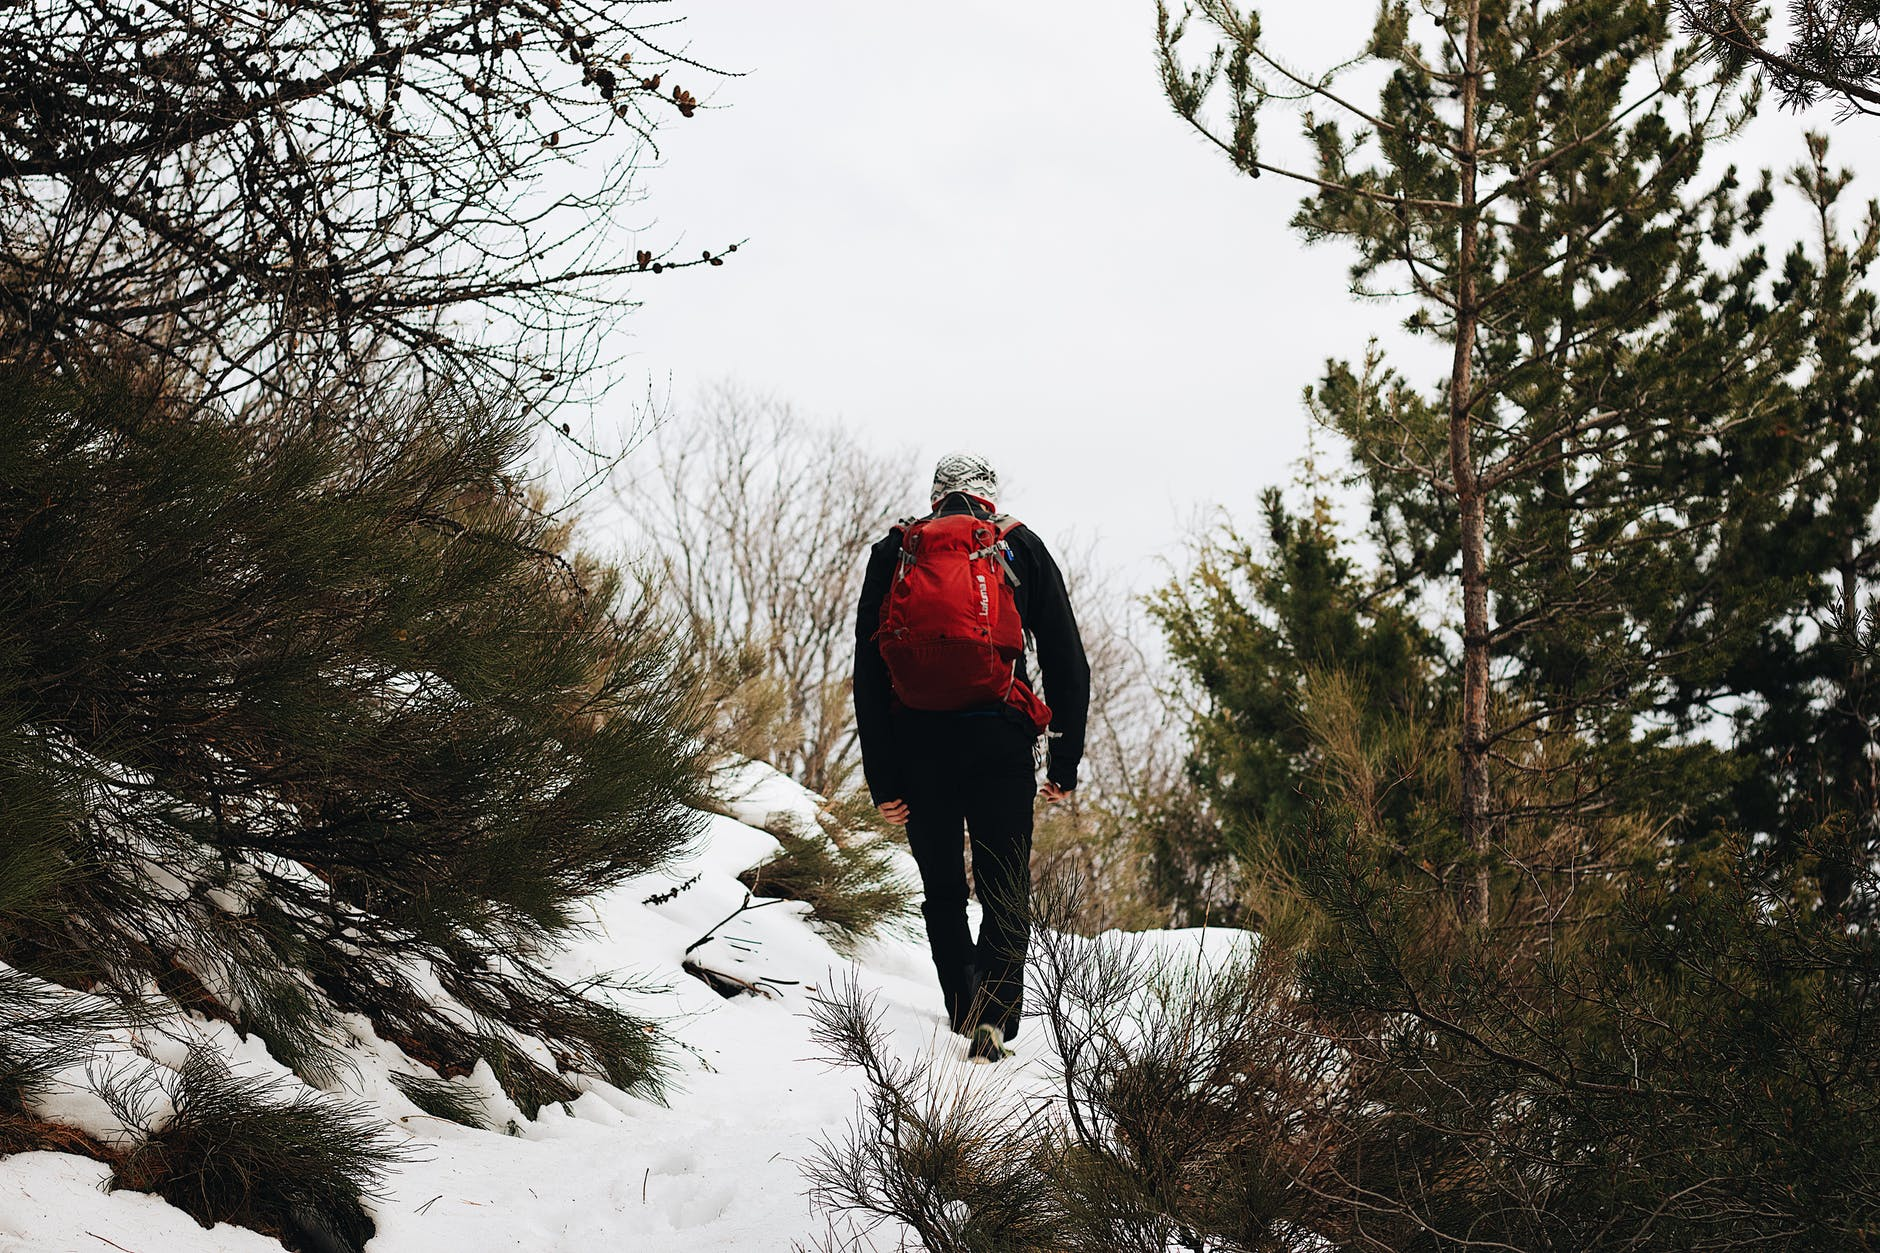 person walking on snowy ground beside trees